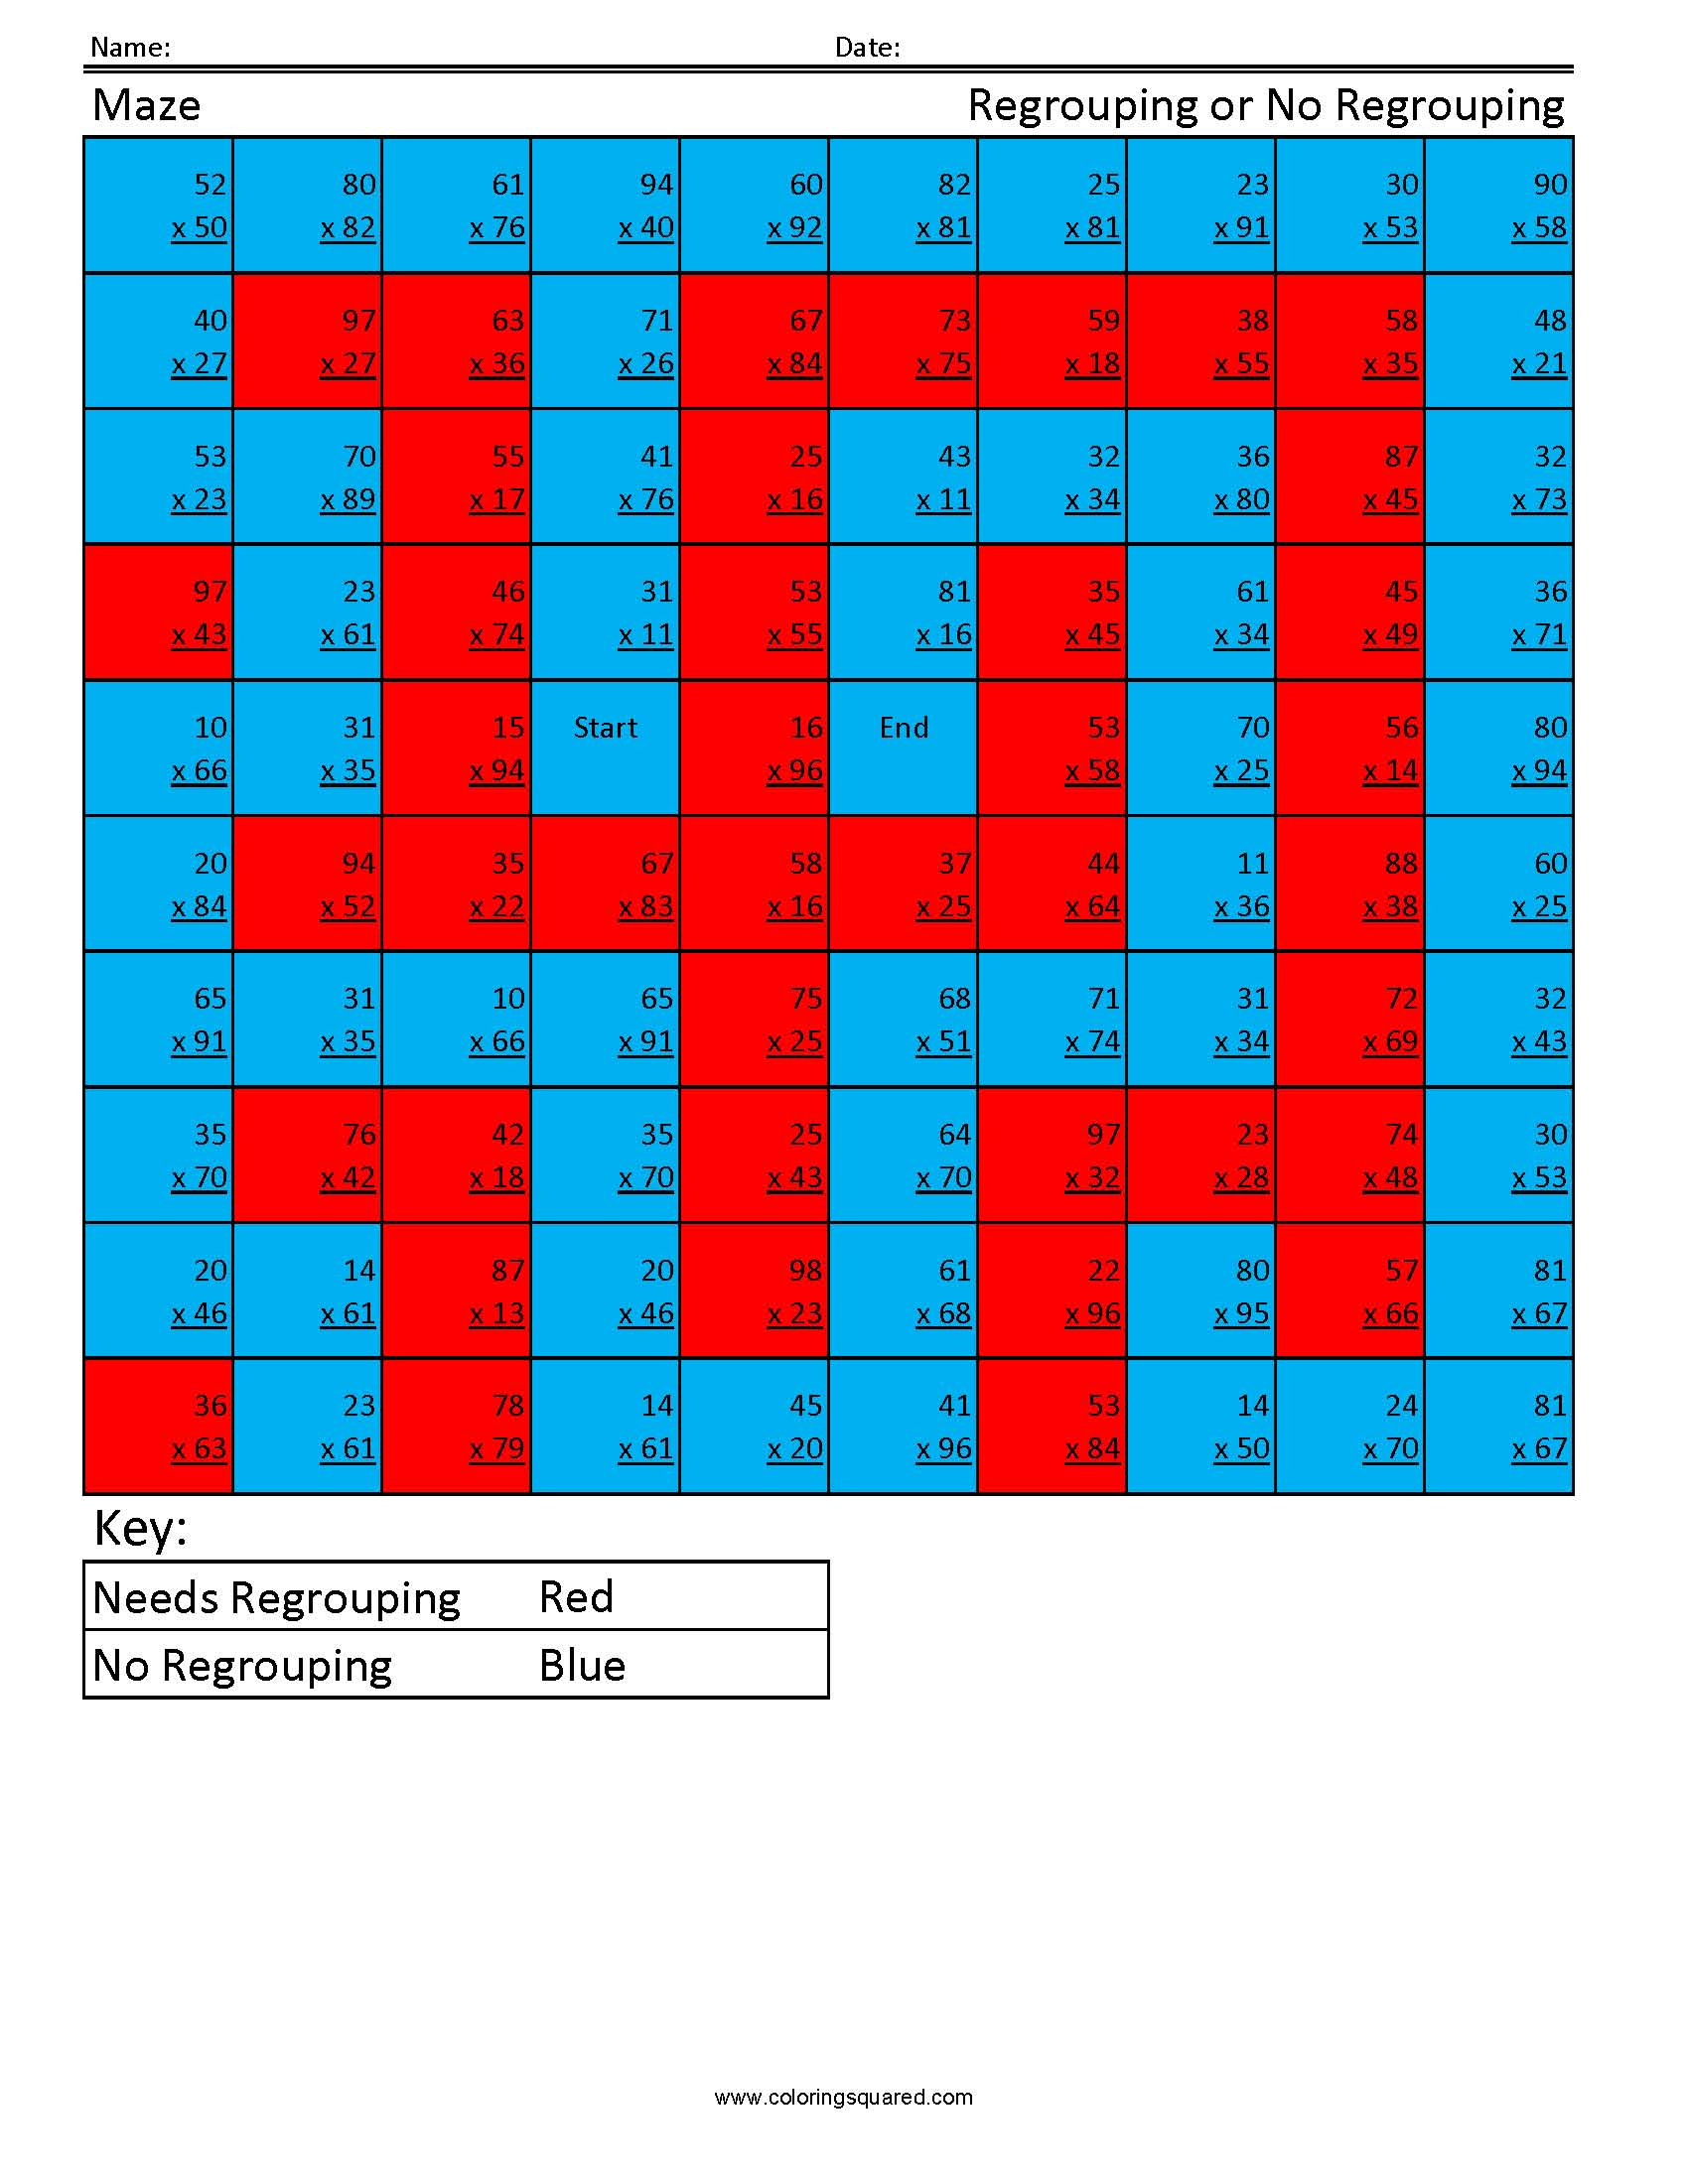 MA5 Maze regrouping multiplication worksheet - Coloring Squared